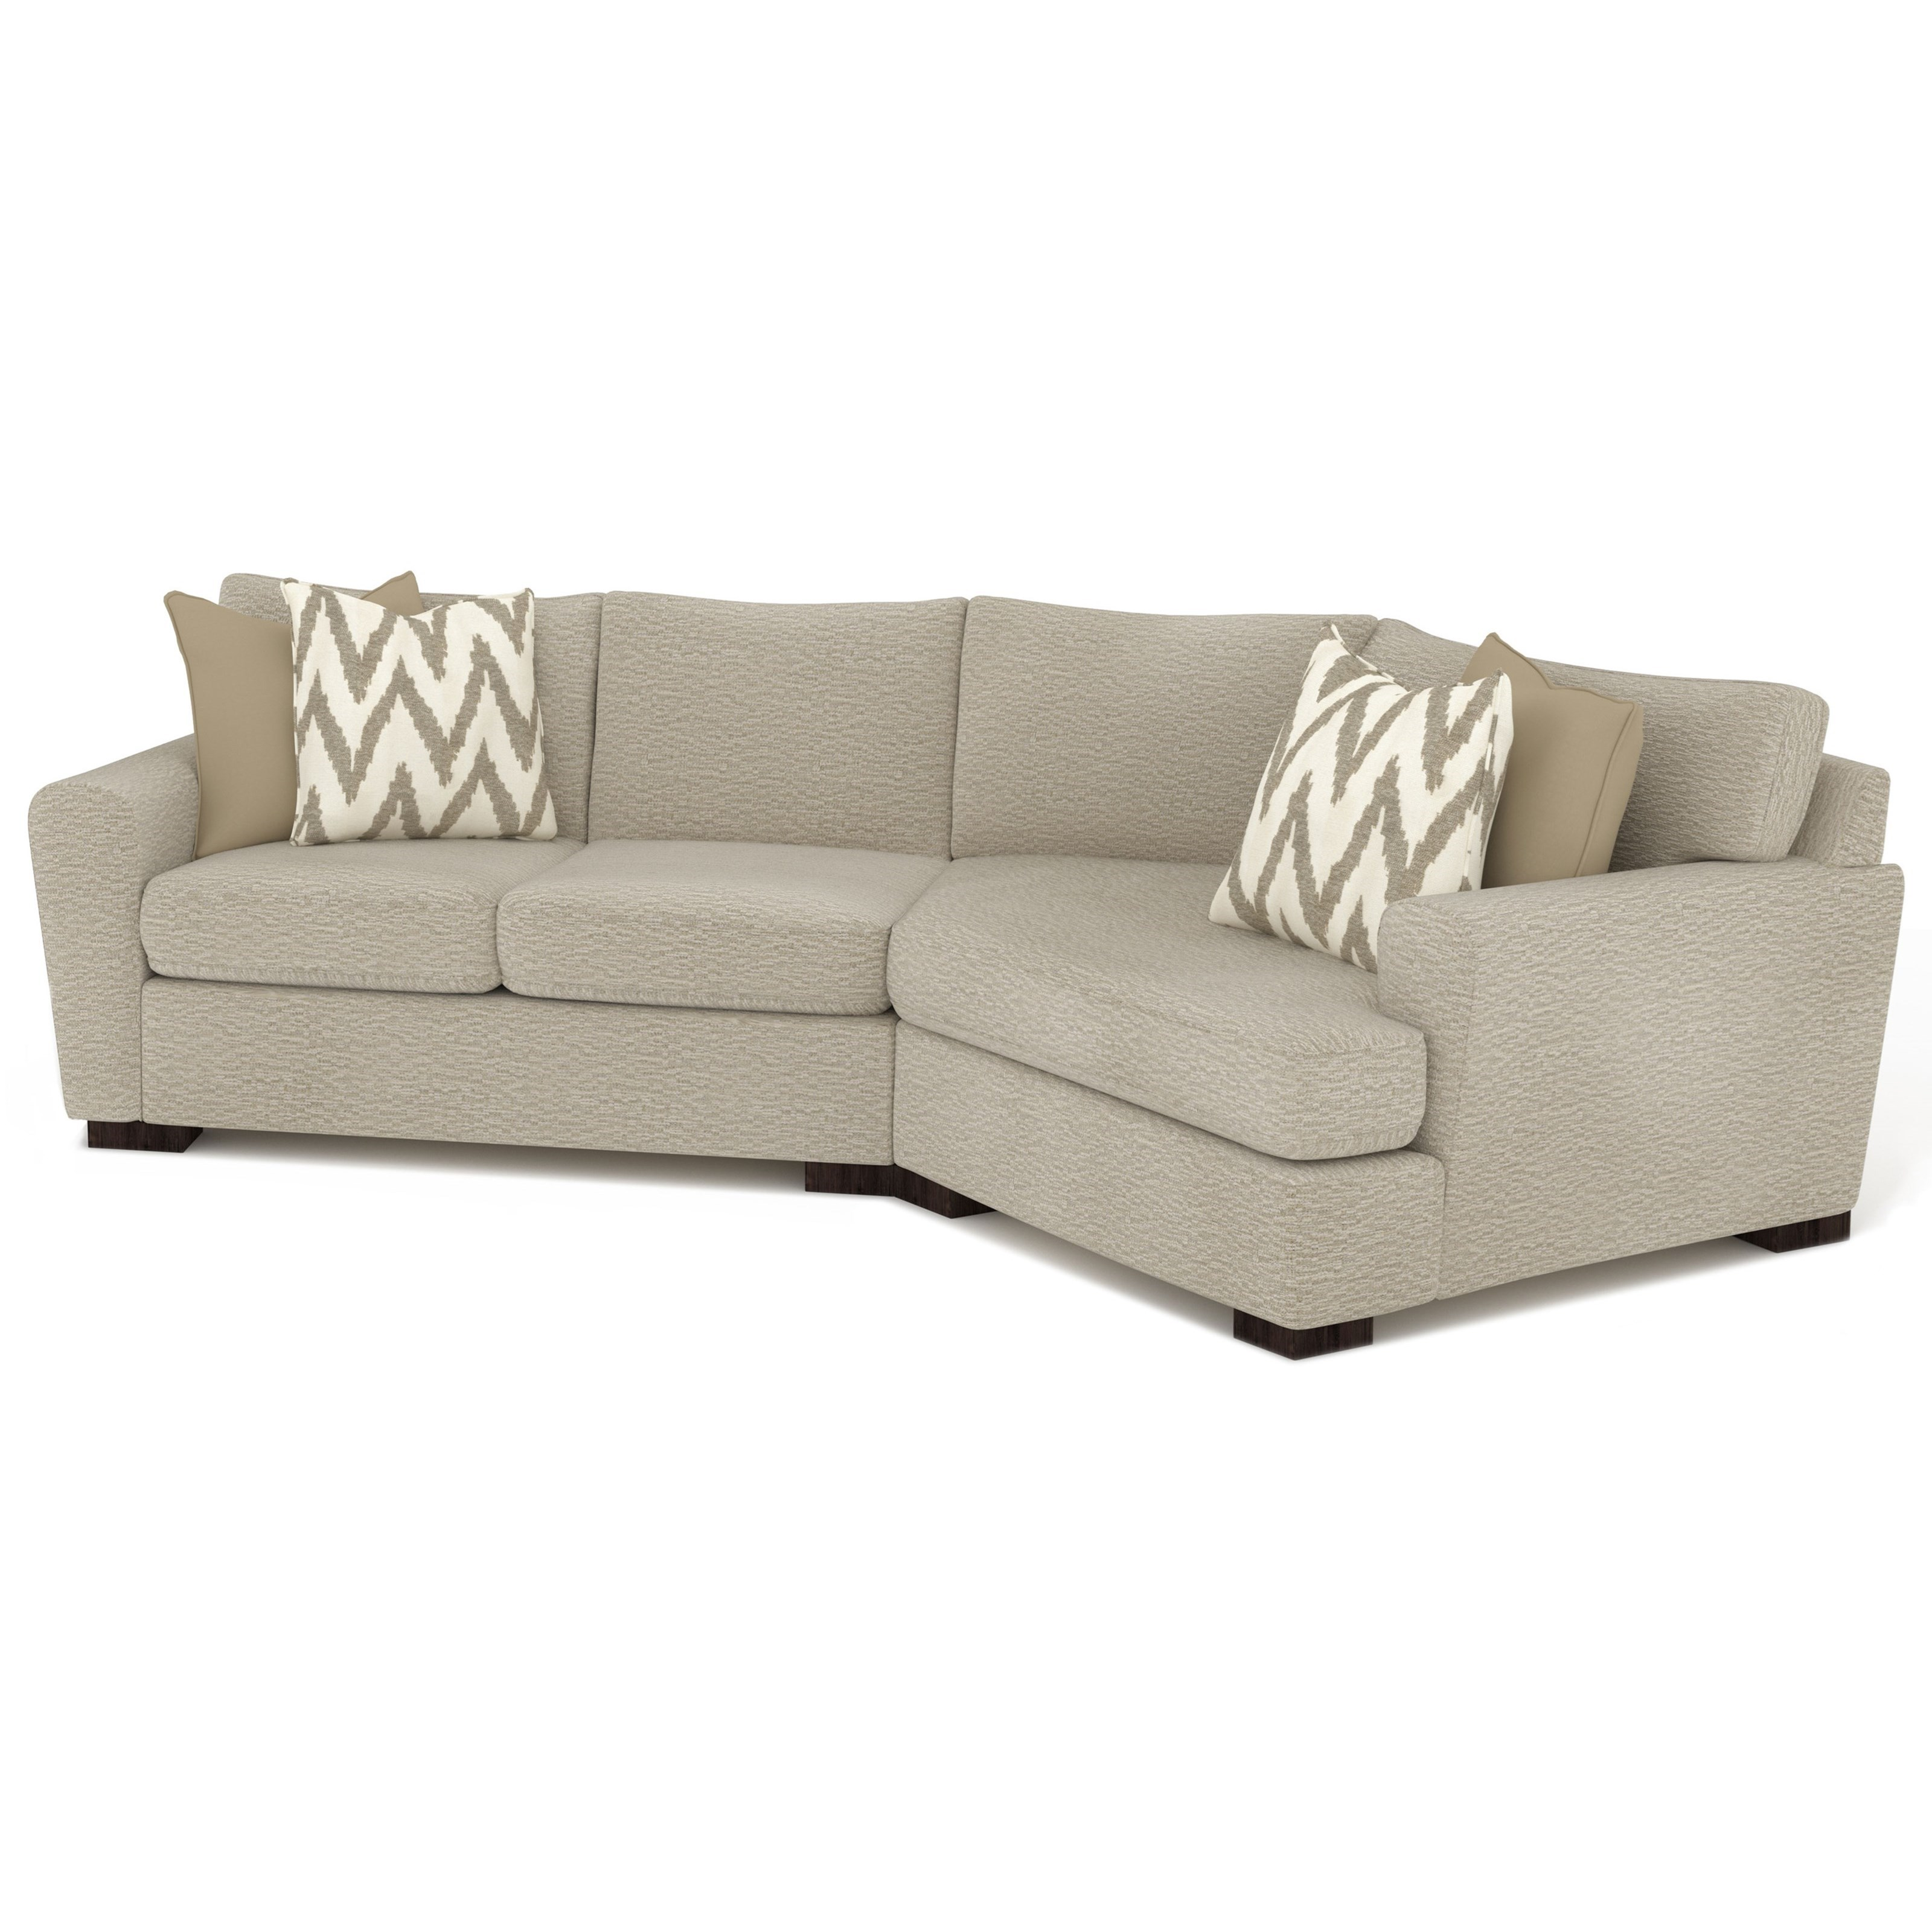 Ava 3-Seat Sectional Sofa w/ RAF Cuddler by Sunset Home at Walker's Furniture